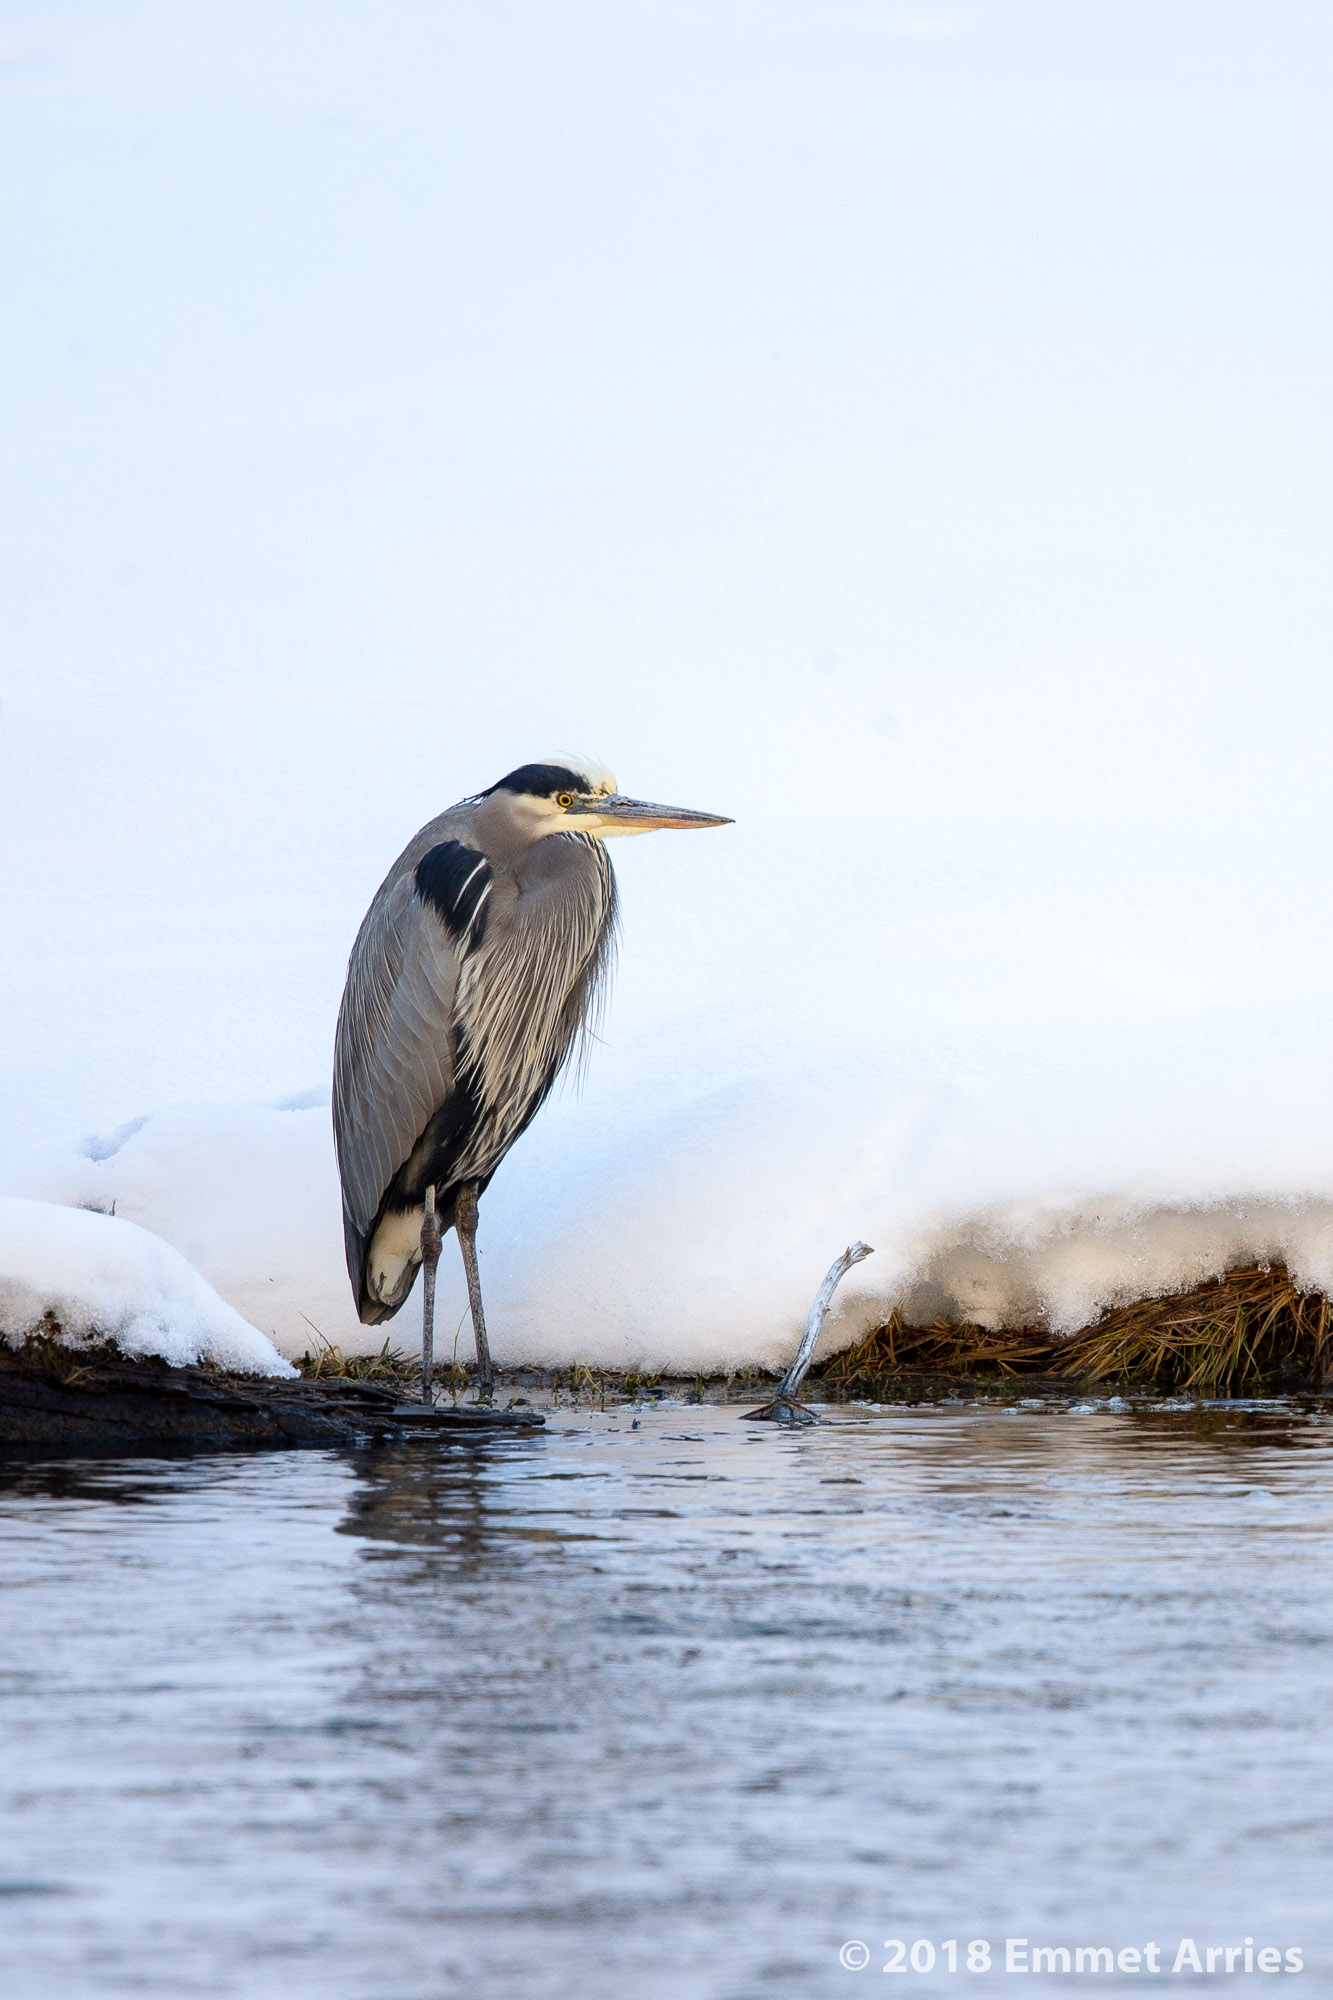 I live in a place with an abundance of Great Blue Herons but it never gets very cold. I was amazed when I found this GBH in Yellowstone during January. I did not know that Great Blue Herons would live in places that received feet upon feet of snow and sub-zero temperatures!